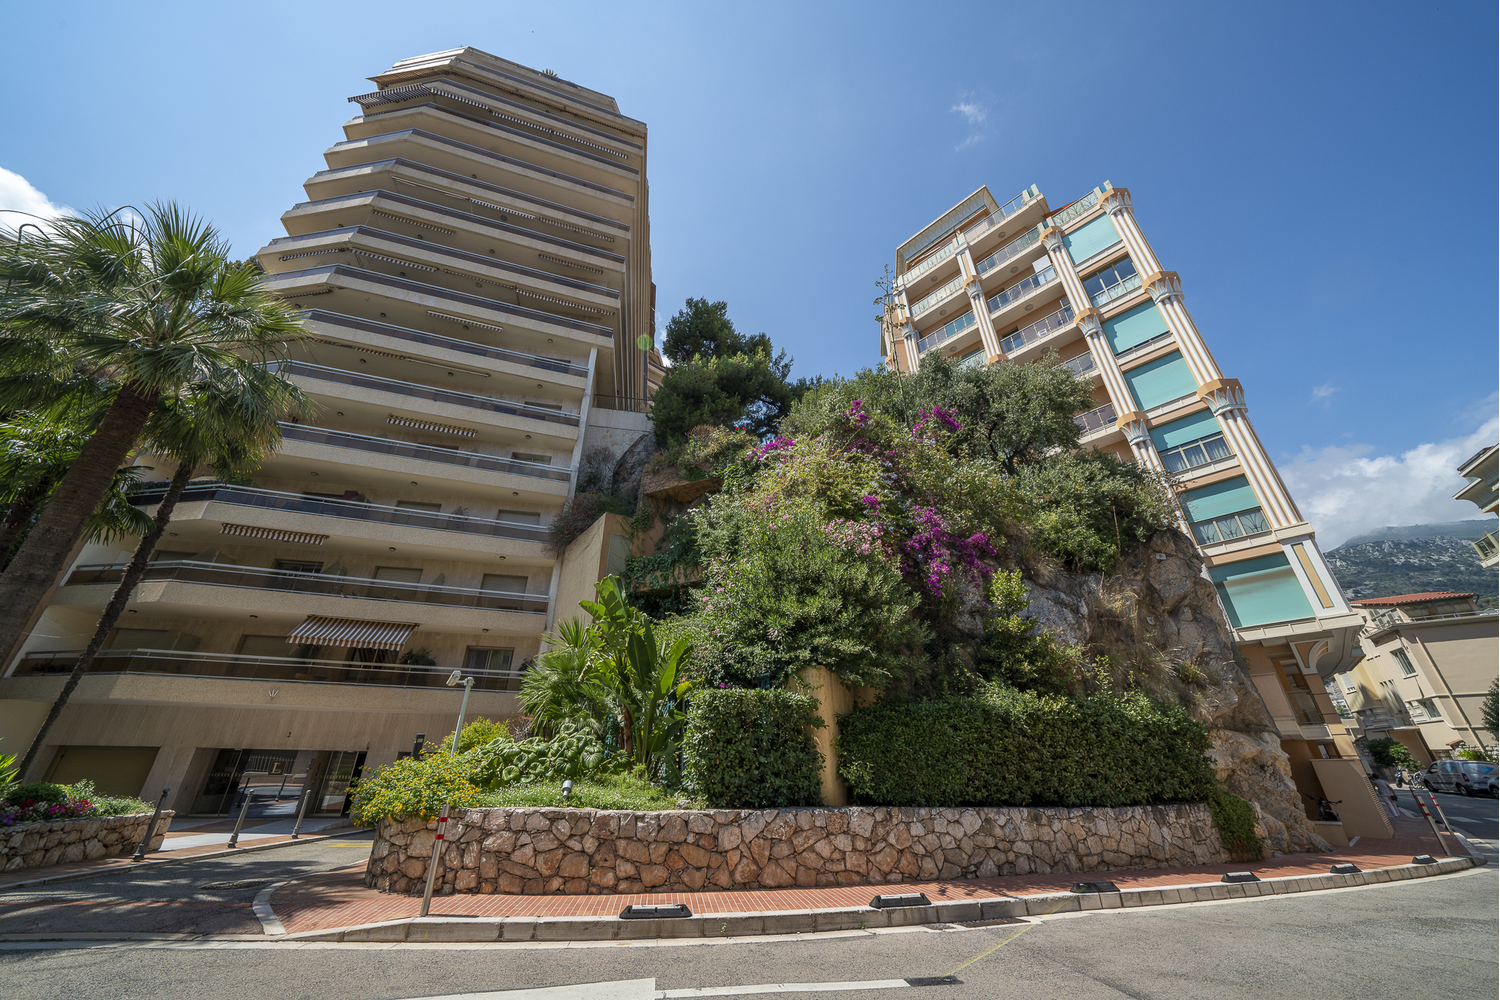 Moneghetti - Harbour Crest - 3-4-room flat - Sea and Port views -  4